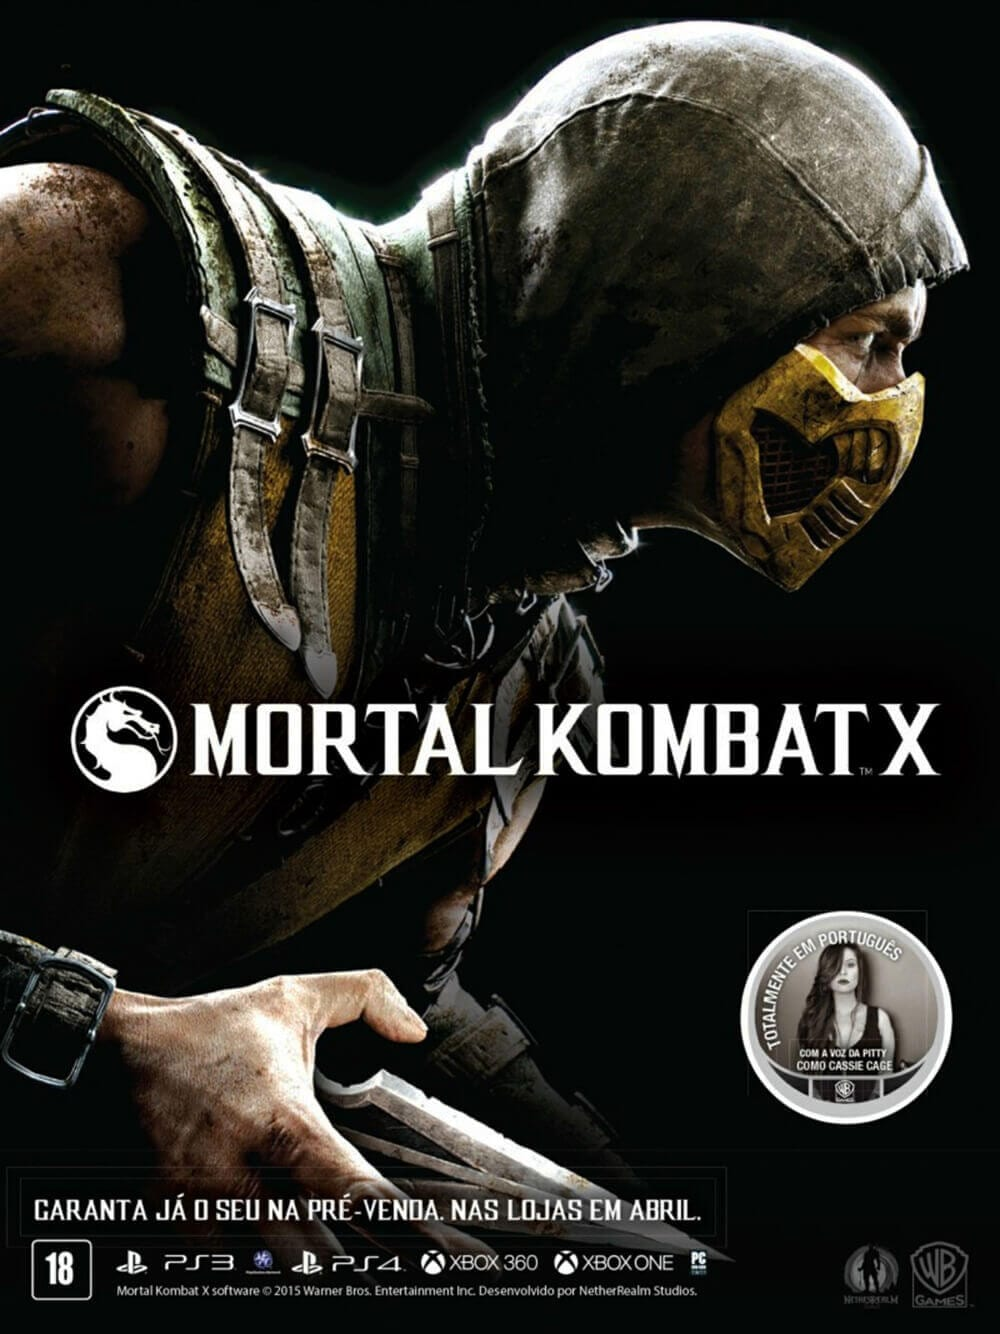 Propaganda Mortal Kombat X com Pitty